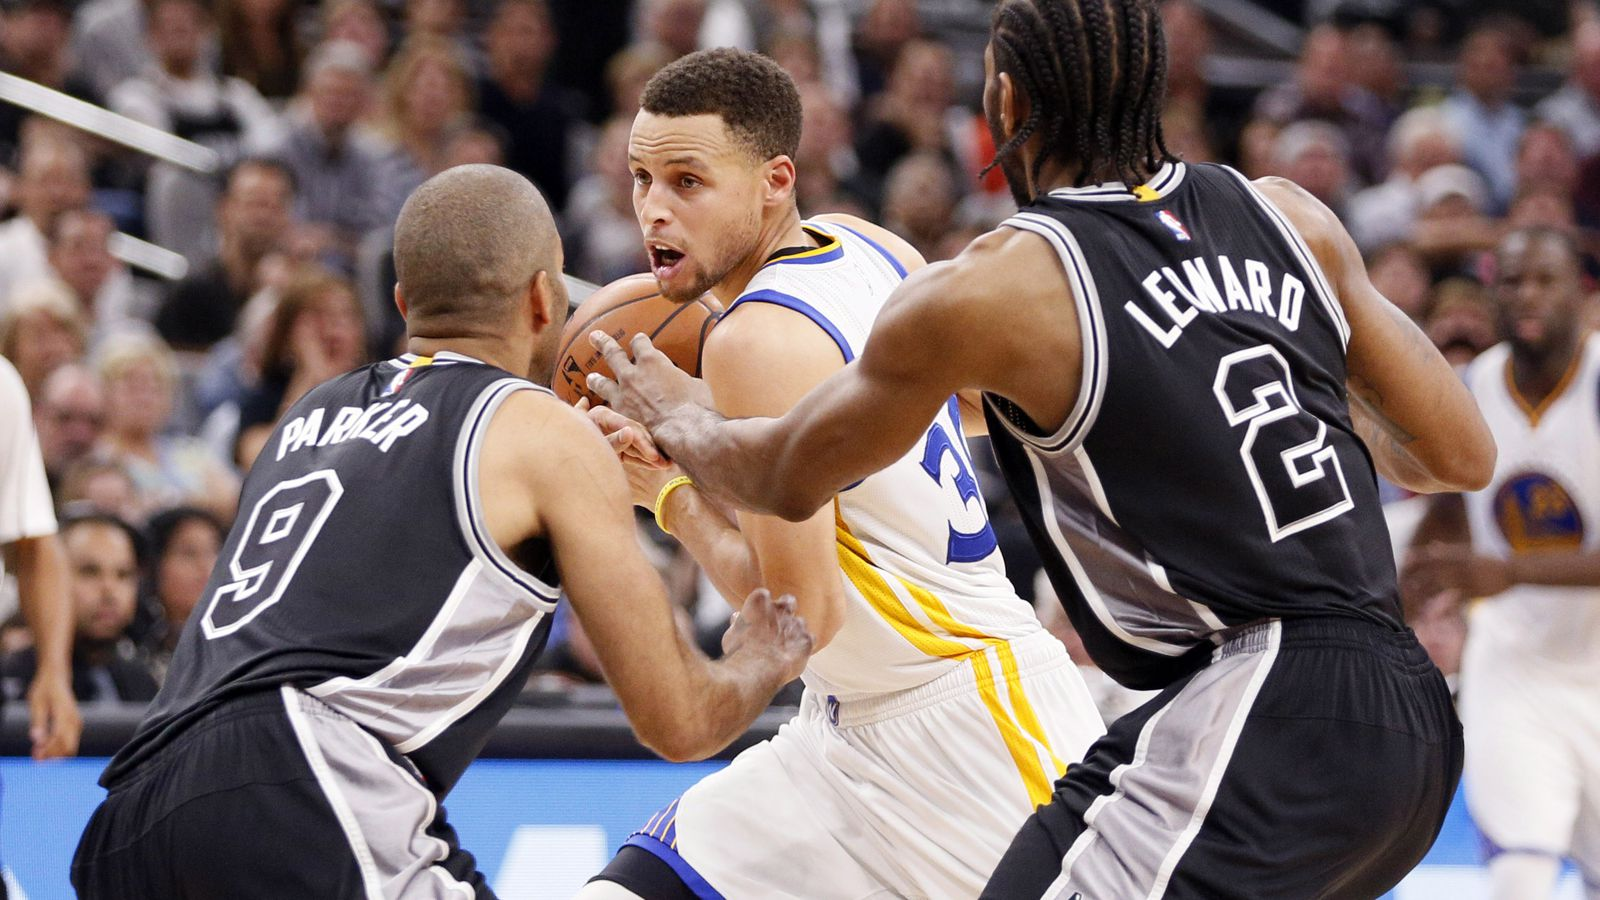 NBA Schedule 2016: Every Game Of Opening Week On The NBA